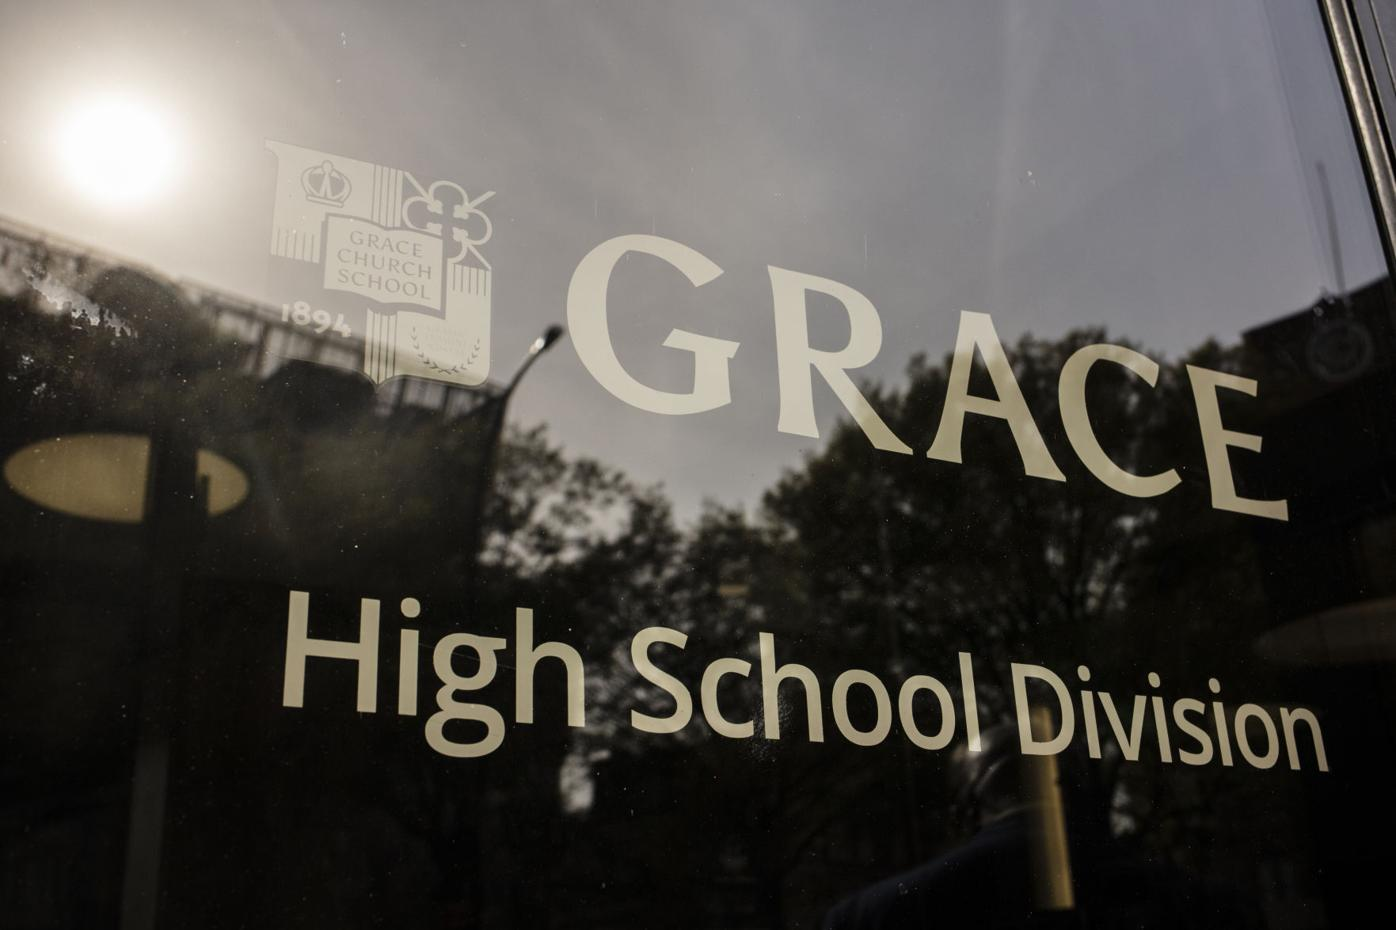 A sign on a window of Grace Church School.